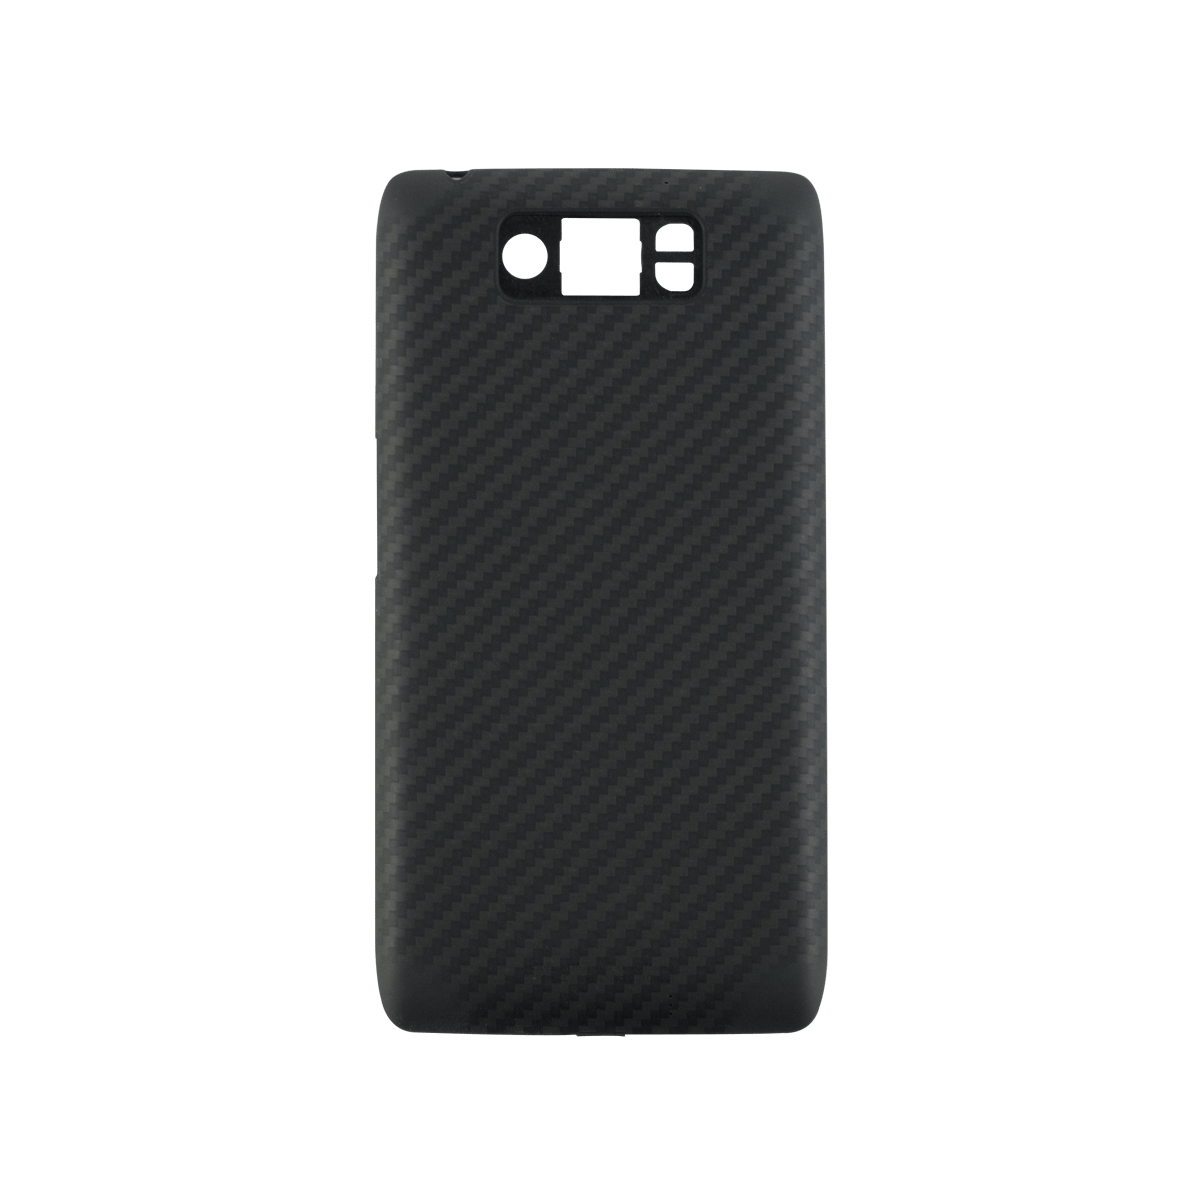 Motorola Droid Ultra XT1080 Back Battery Cover Replacement